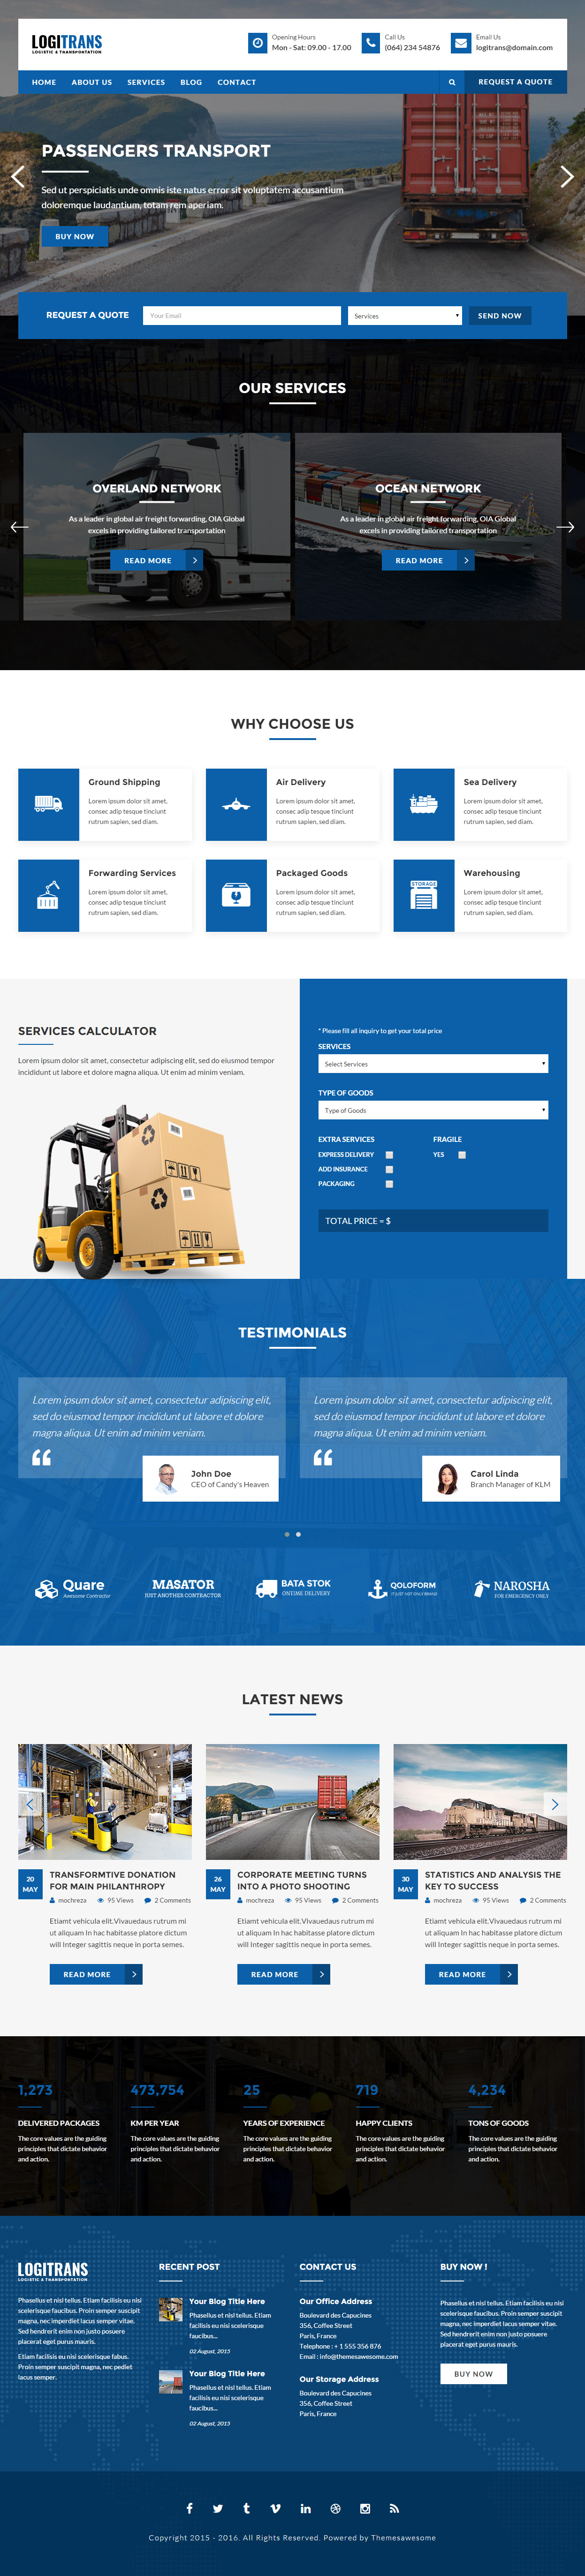 Parallax Website Template Logitrans Is Premium Full Responsive Logistic Html5 Template